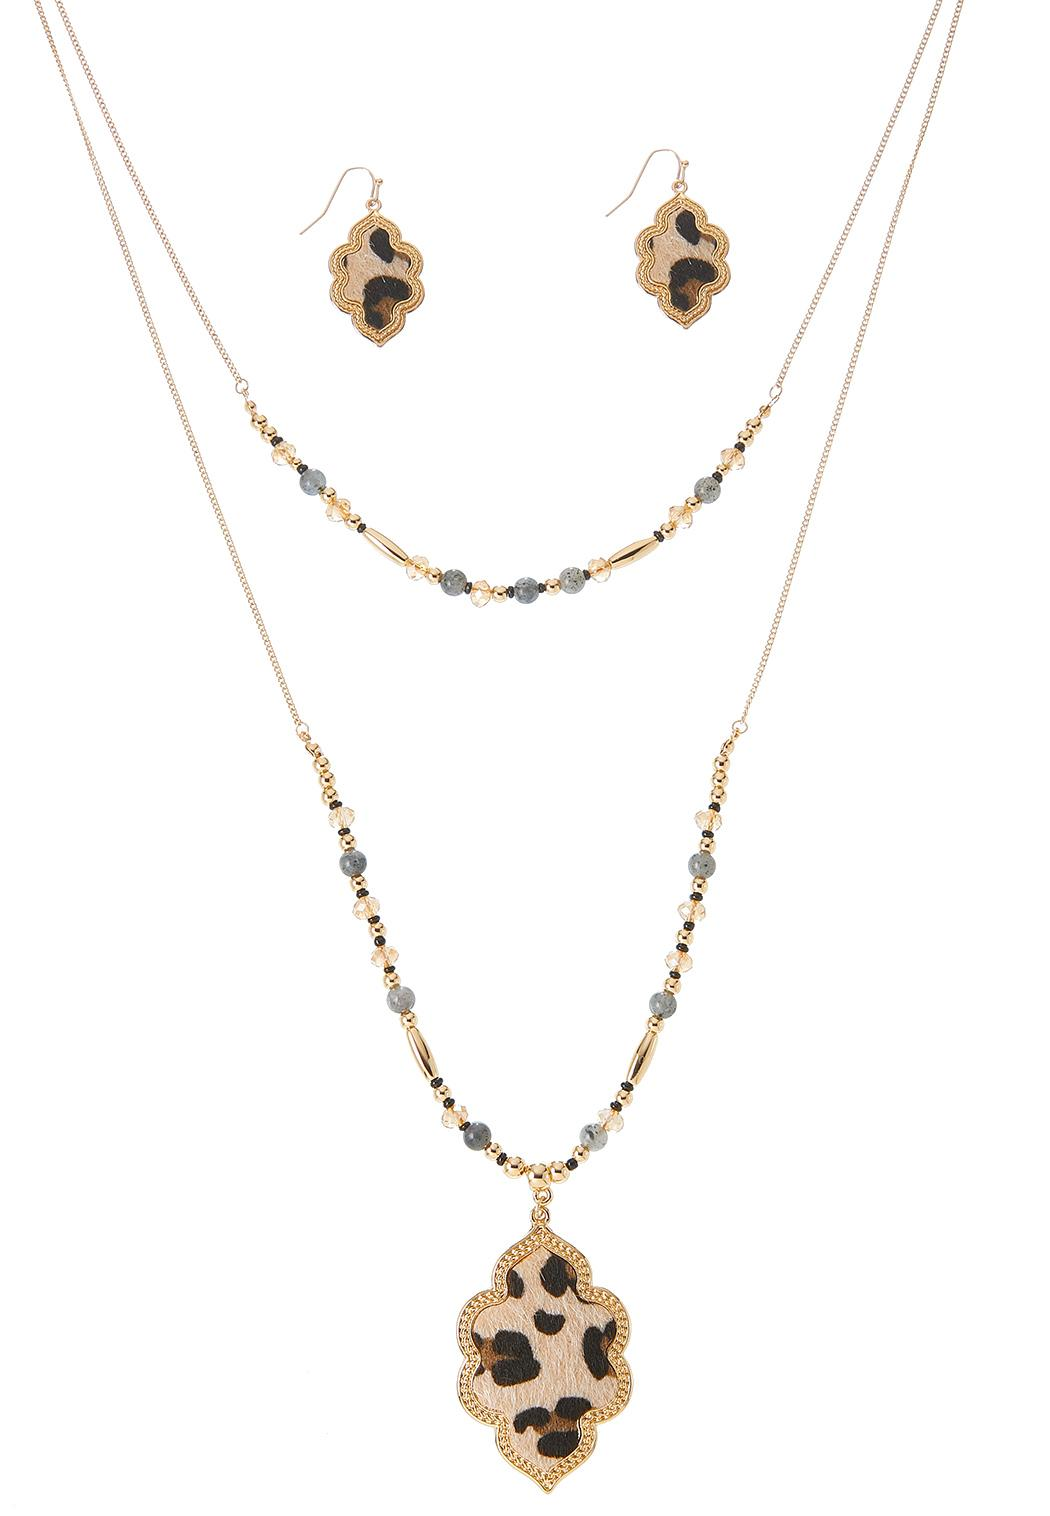 Textured Animal Print Necklace Earring Set